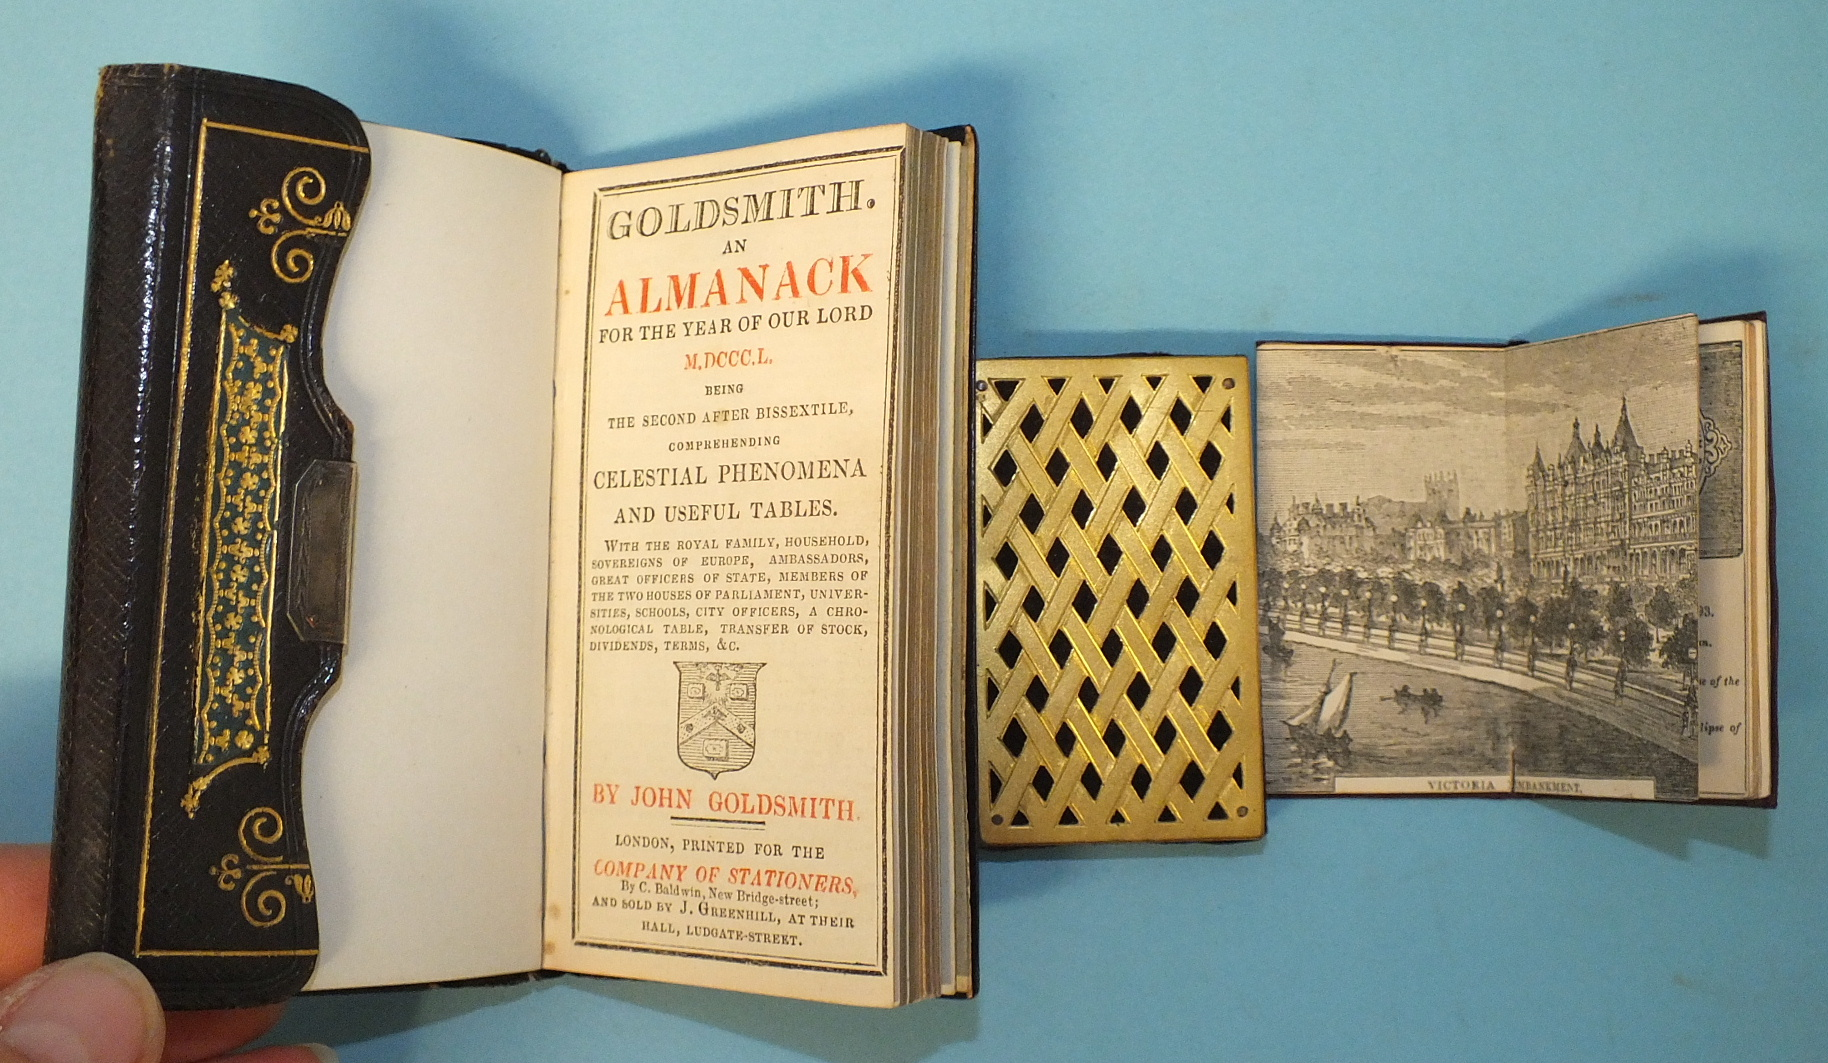 Lot 54 - Goldsmith (John), An Almanac for the Year of our Lord 1850, front pocket, pencil pocket, black mor